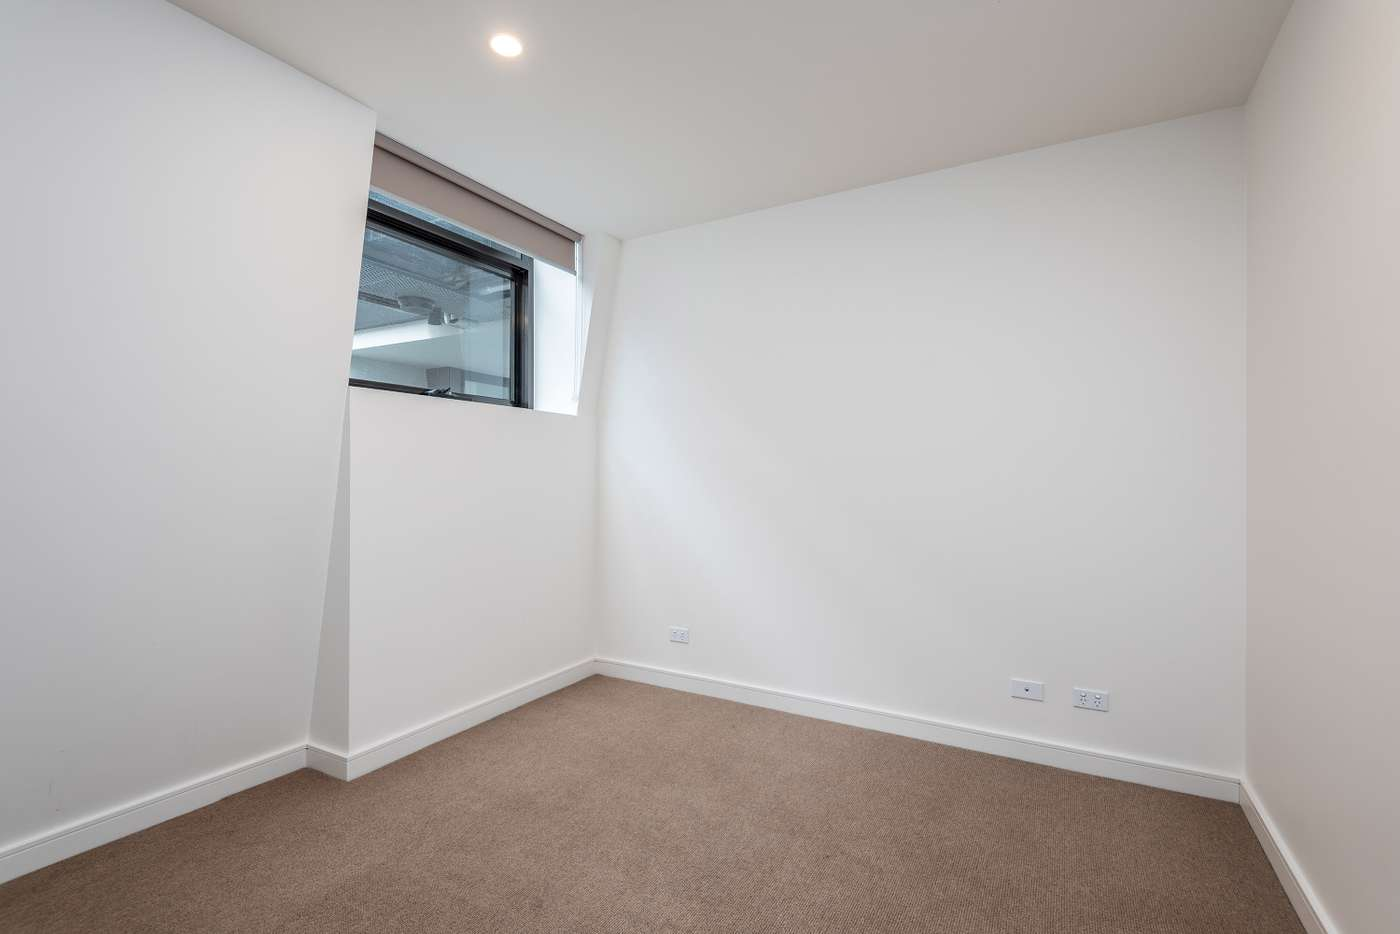 Seventh view of Homely apartment listing, 202/817-819 Centre Road, Bentleigh East VIC 3165